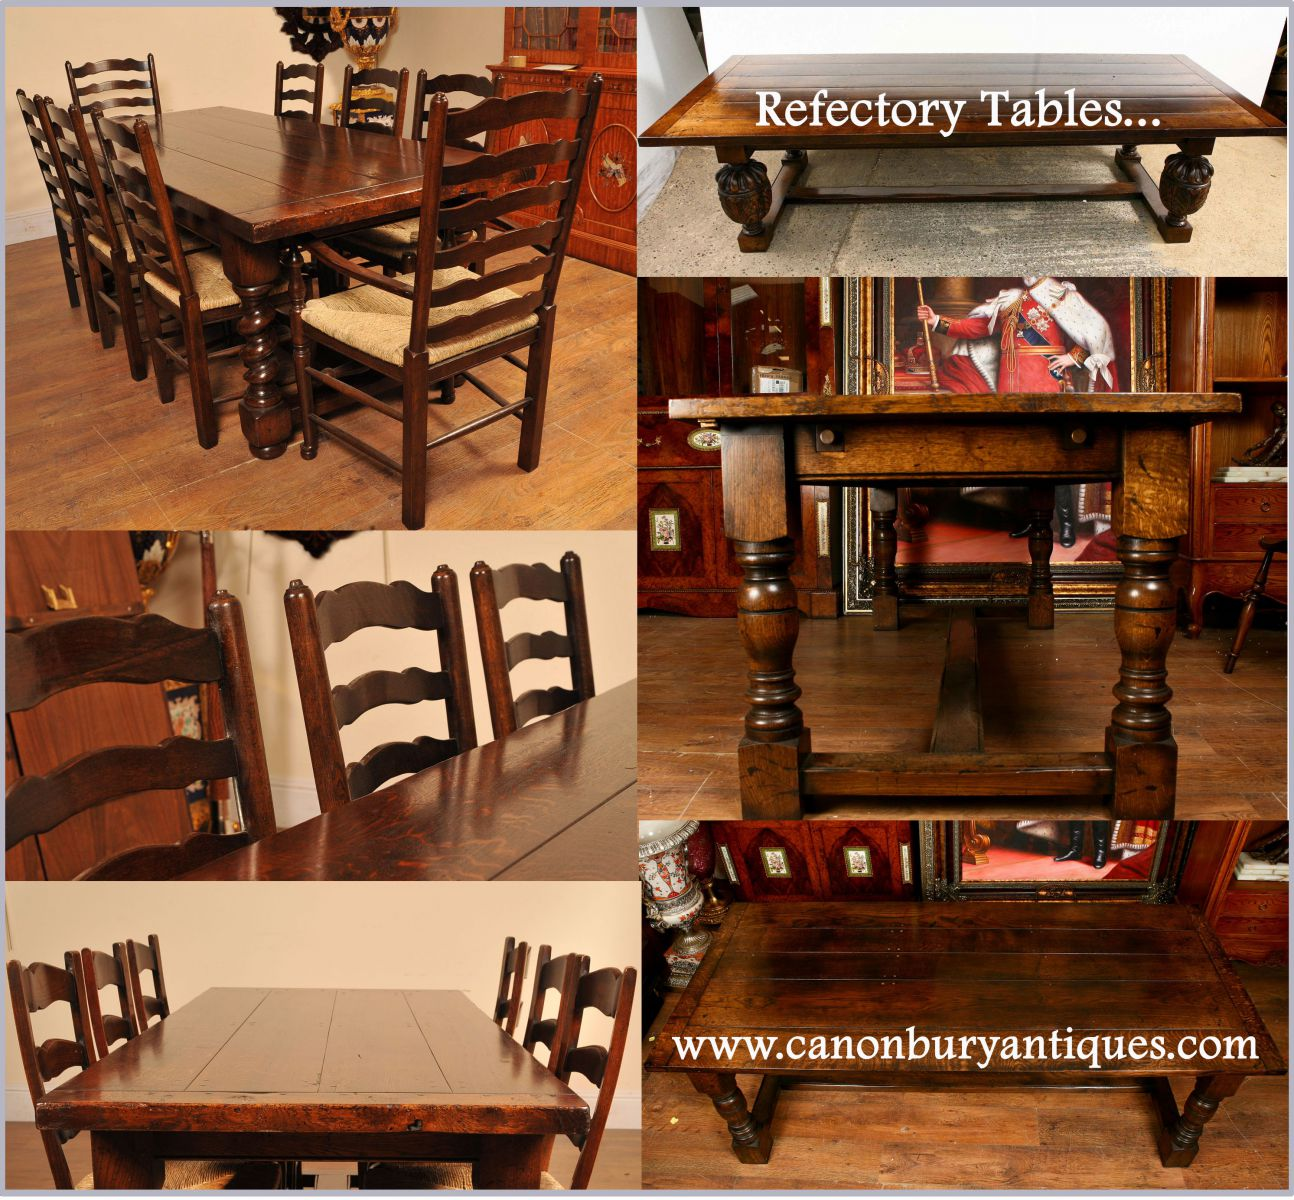 This set look superb around the refectory table with barley twist legs